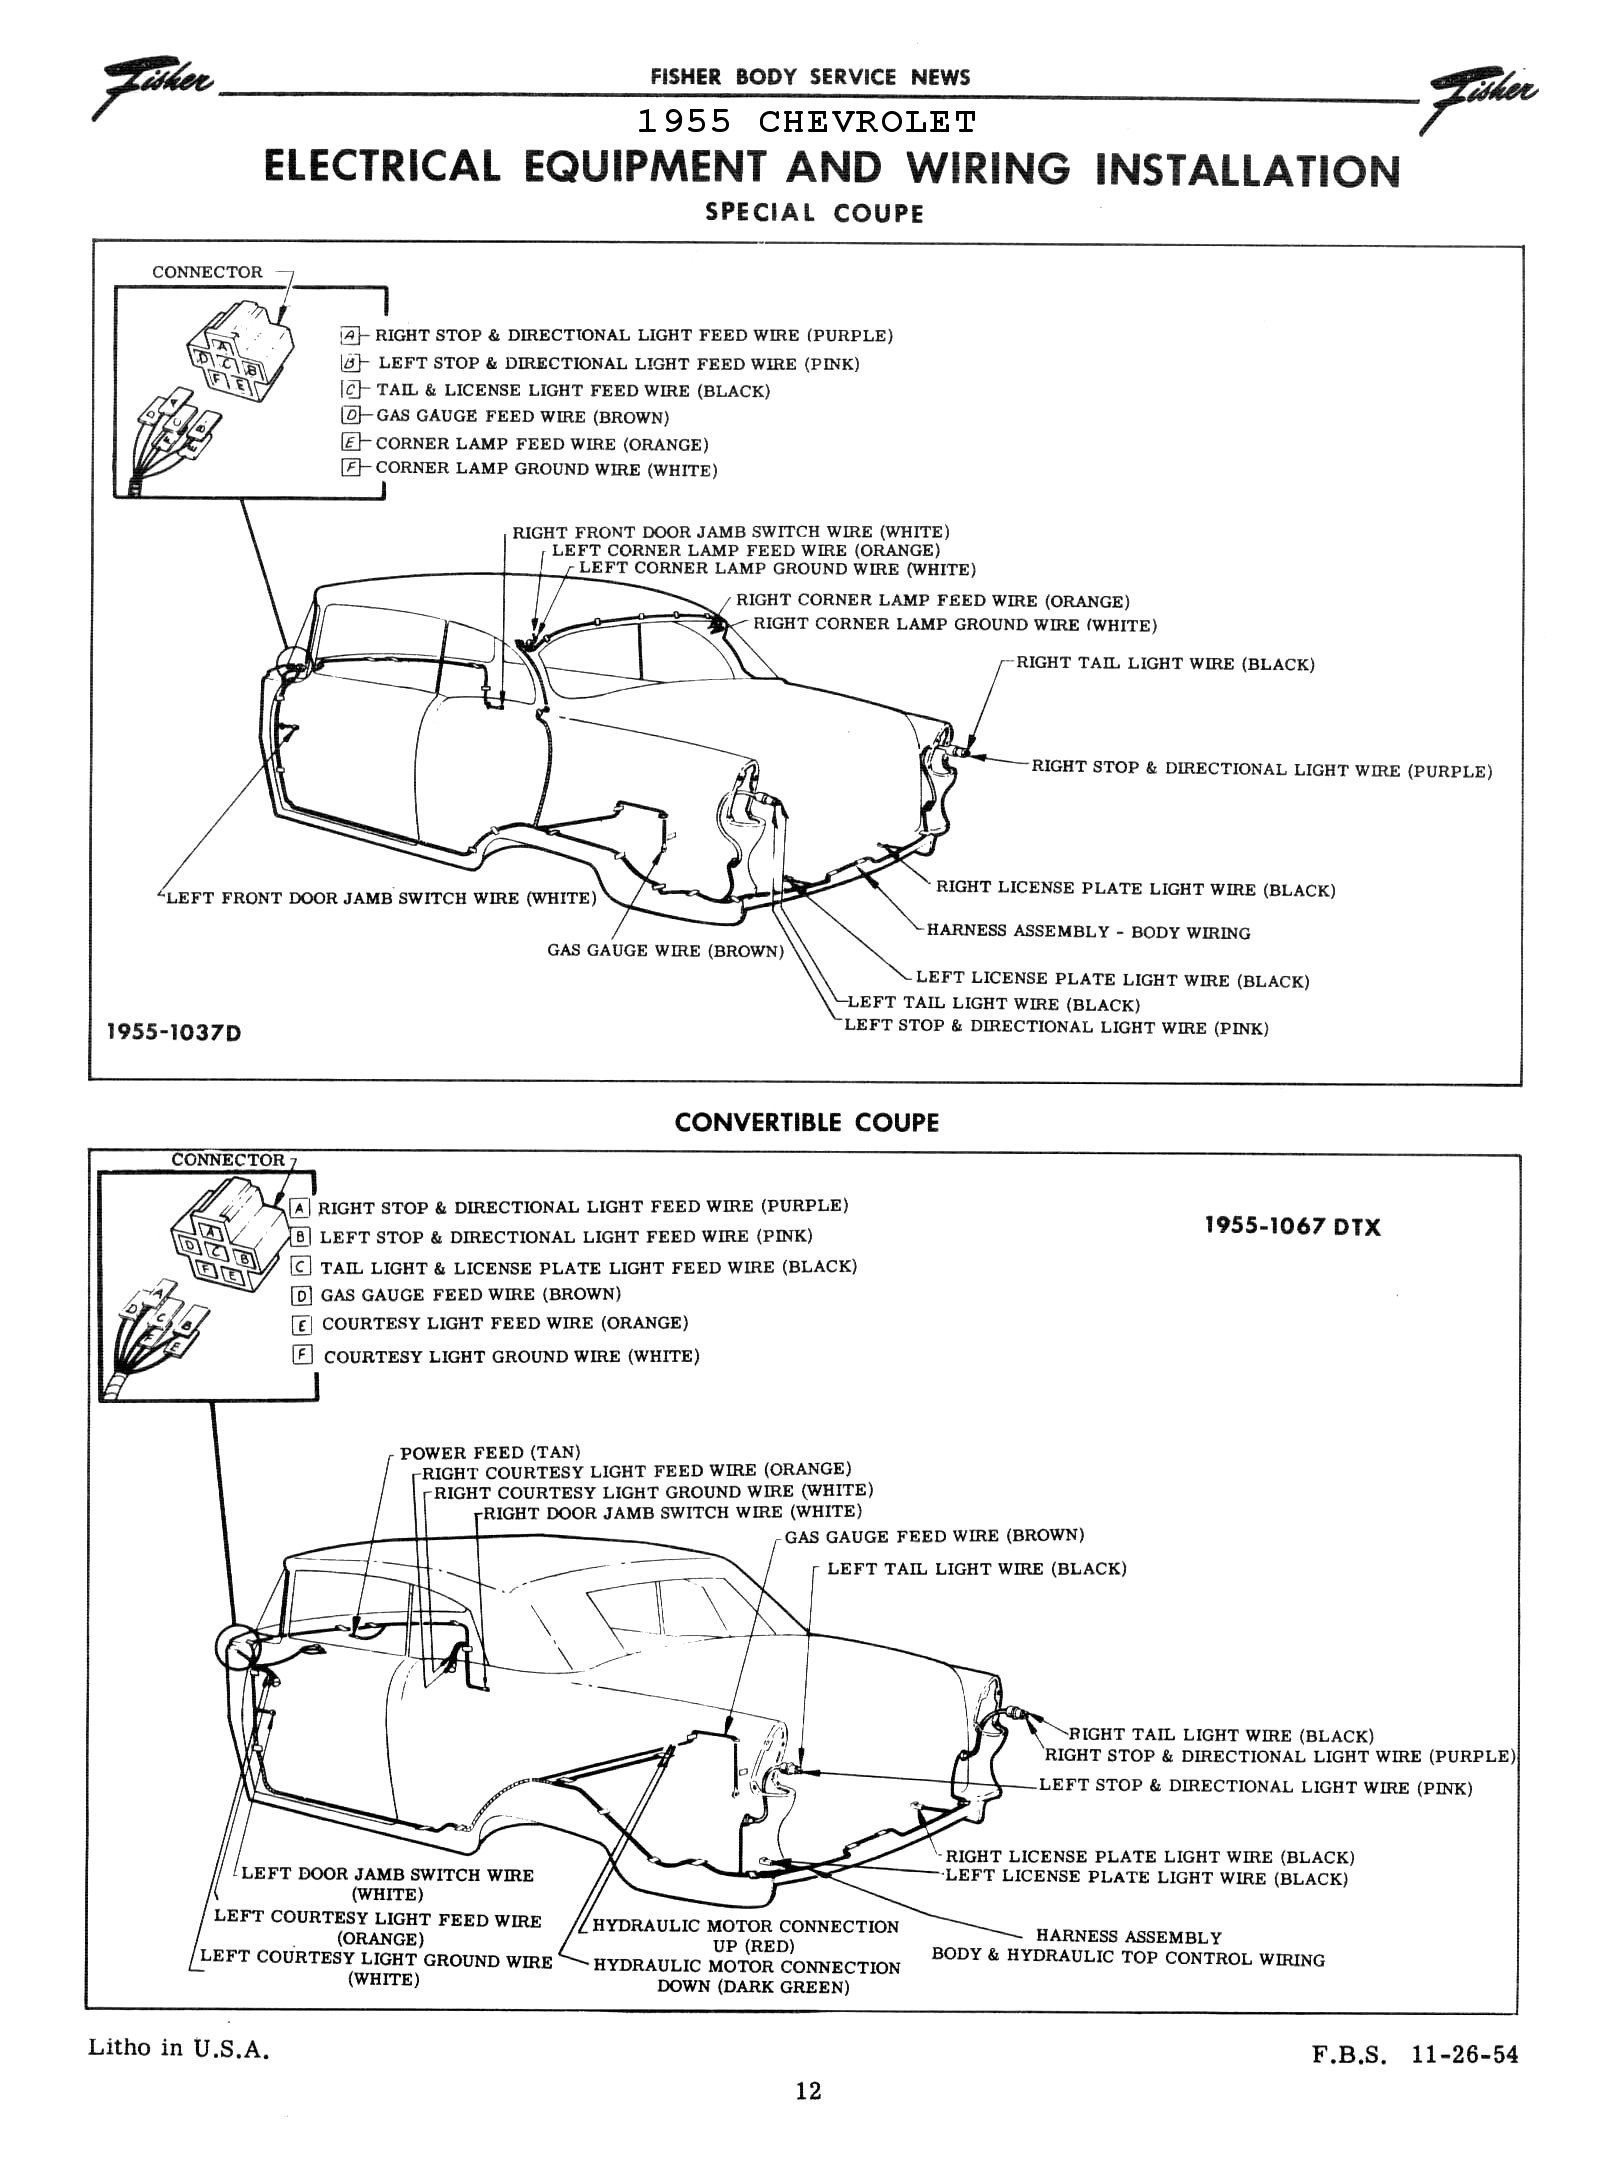 55fsn140612 1955 chevy wiring diagram 1955 pontiac wiring diagram \u2022 free 1955 Chevy Headlight Wiring Diagram at reclaimingppi.co